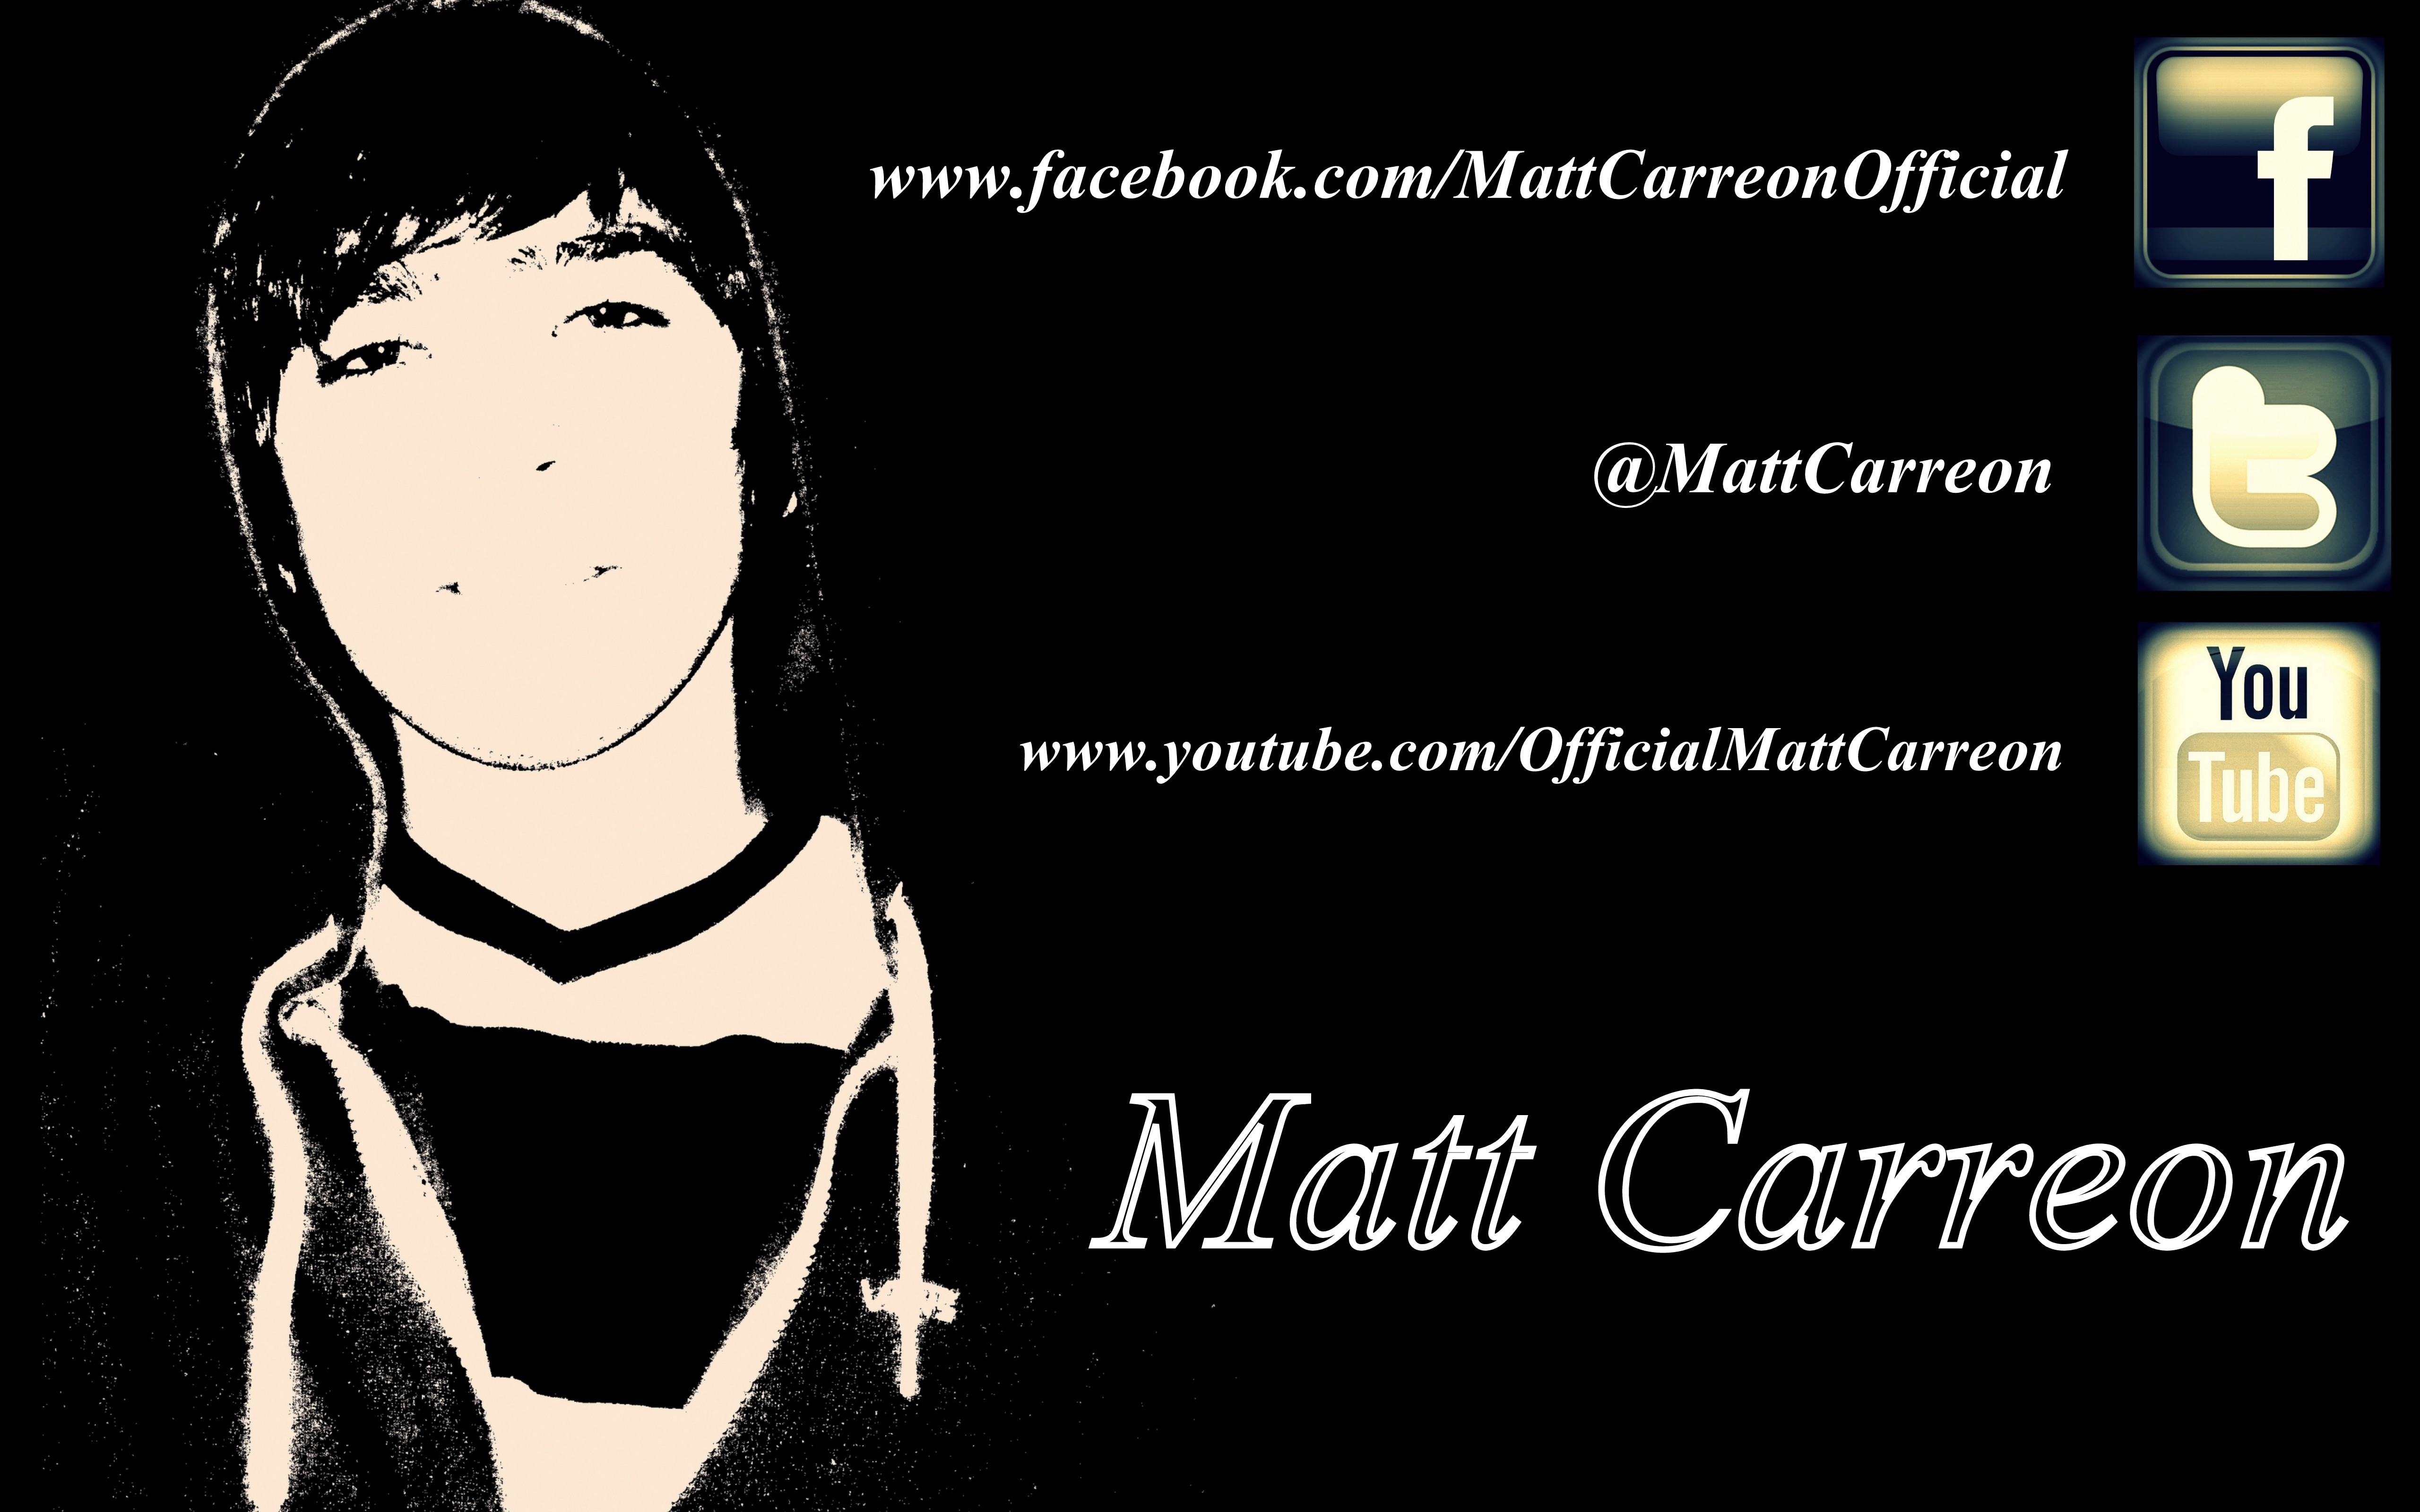 Matt Carreon